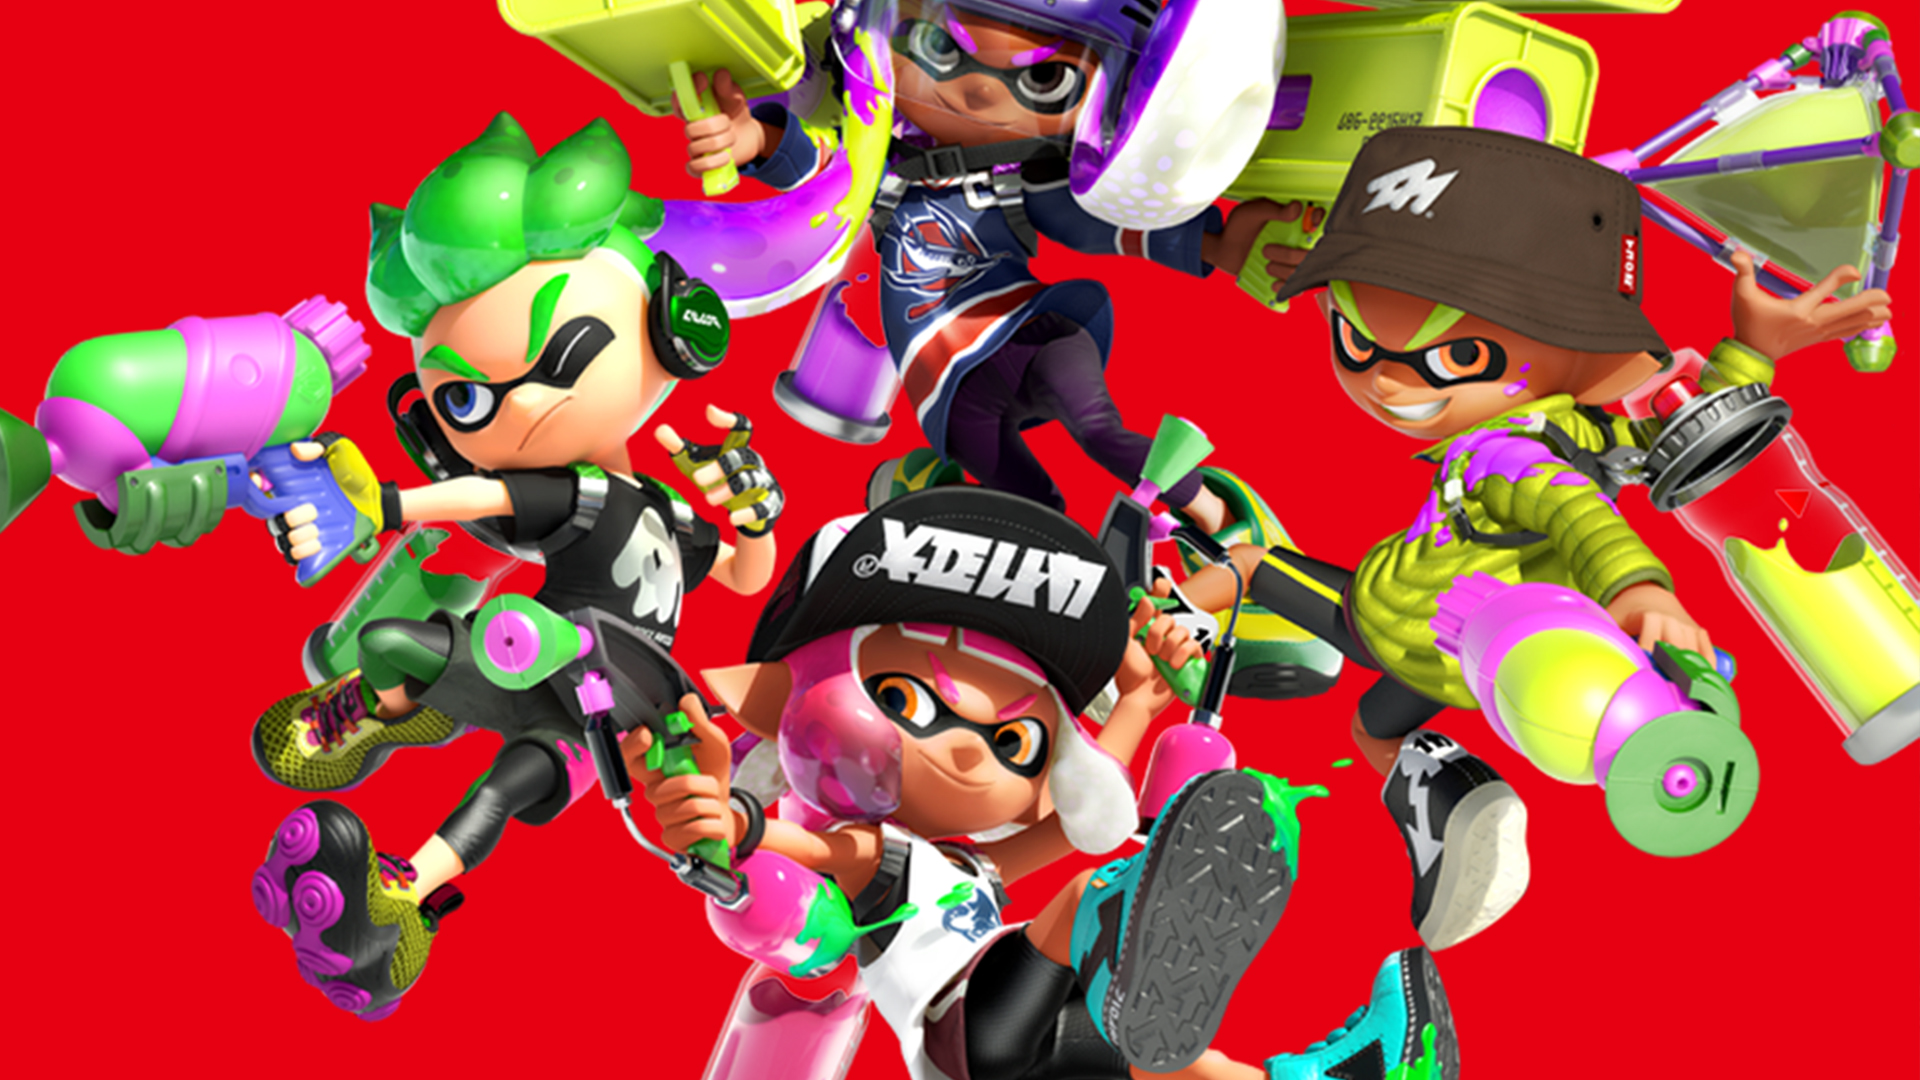 Splatoon Wallpaper Iphone New Story Mode Features For Splatoon 2 Revealed Nintendo